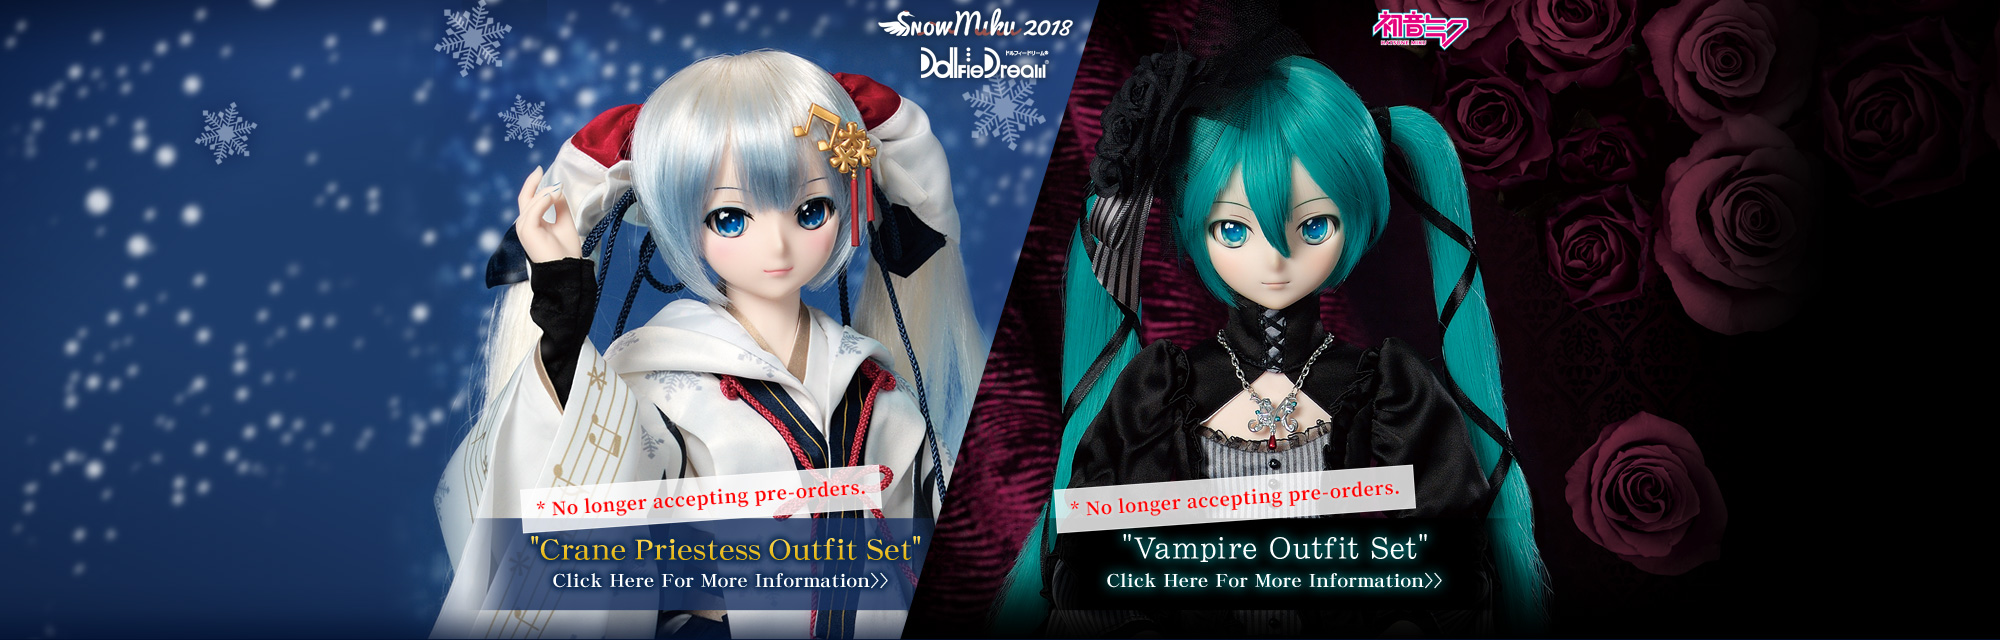 """Crane Priestess Outfit Set"" & ""Vampire Outfit Set"" Pre-order Project"